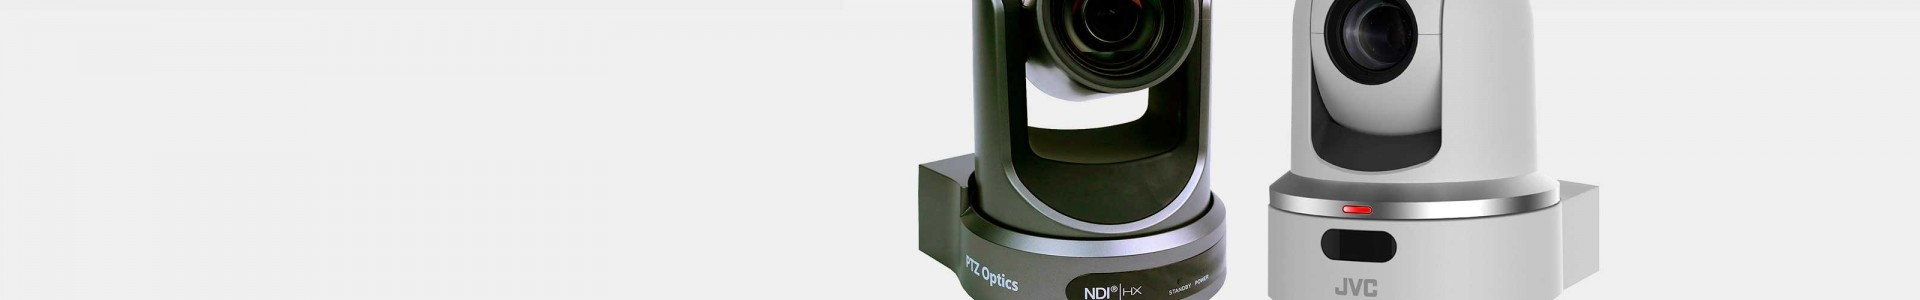 PTZ or robotic cameras - Find the one you are looking for at Avacab